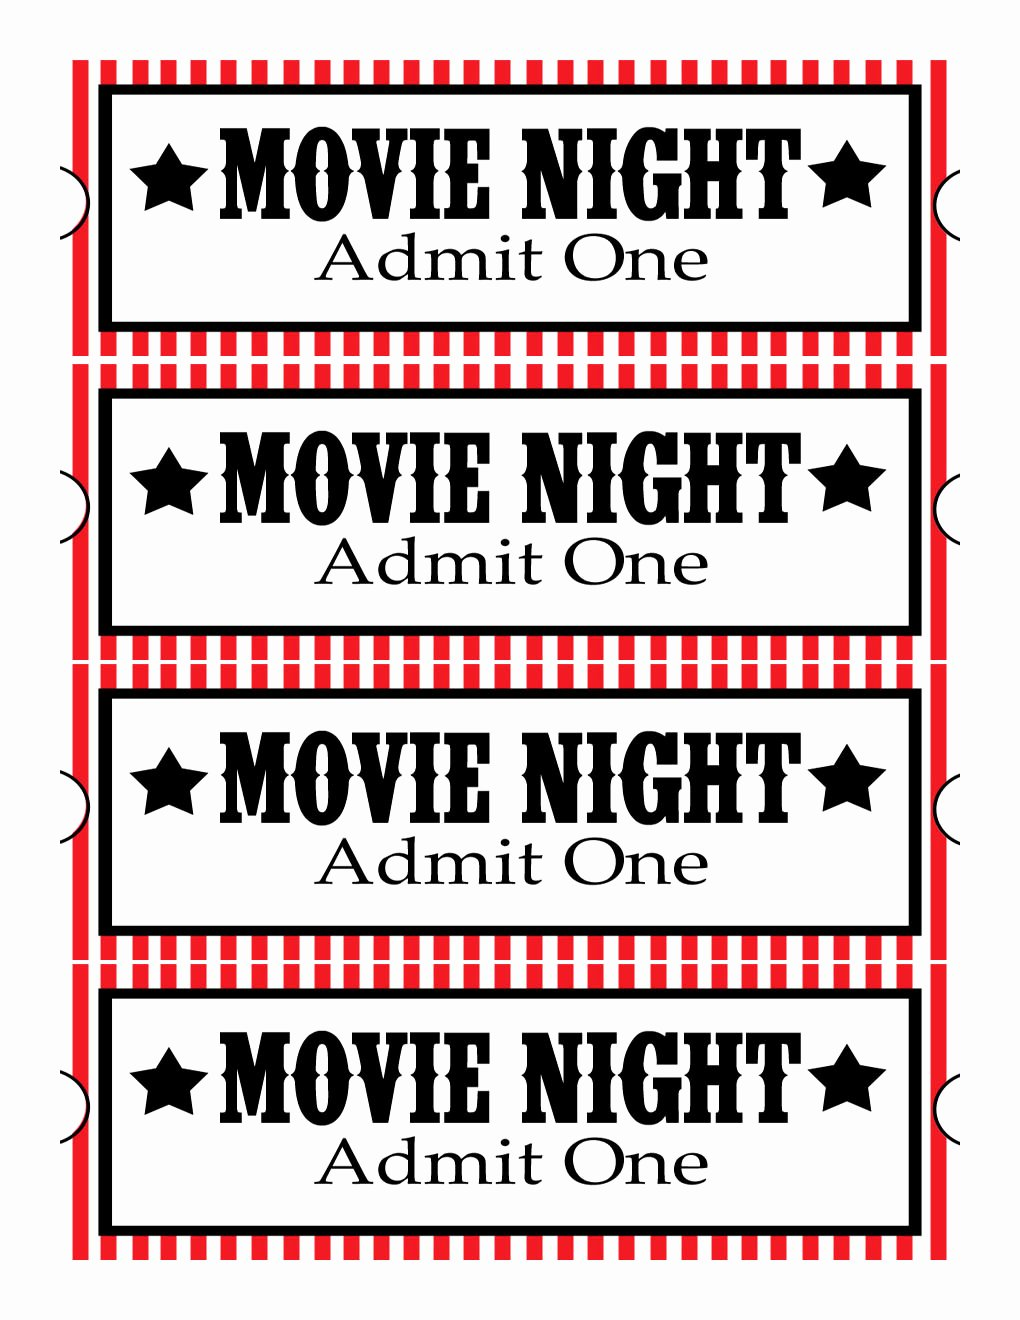 Printable Movie Tickets Template Lovely Sweet Daisy Designs Free Printables Home Movie theatre Night